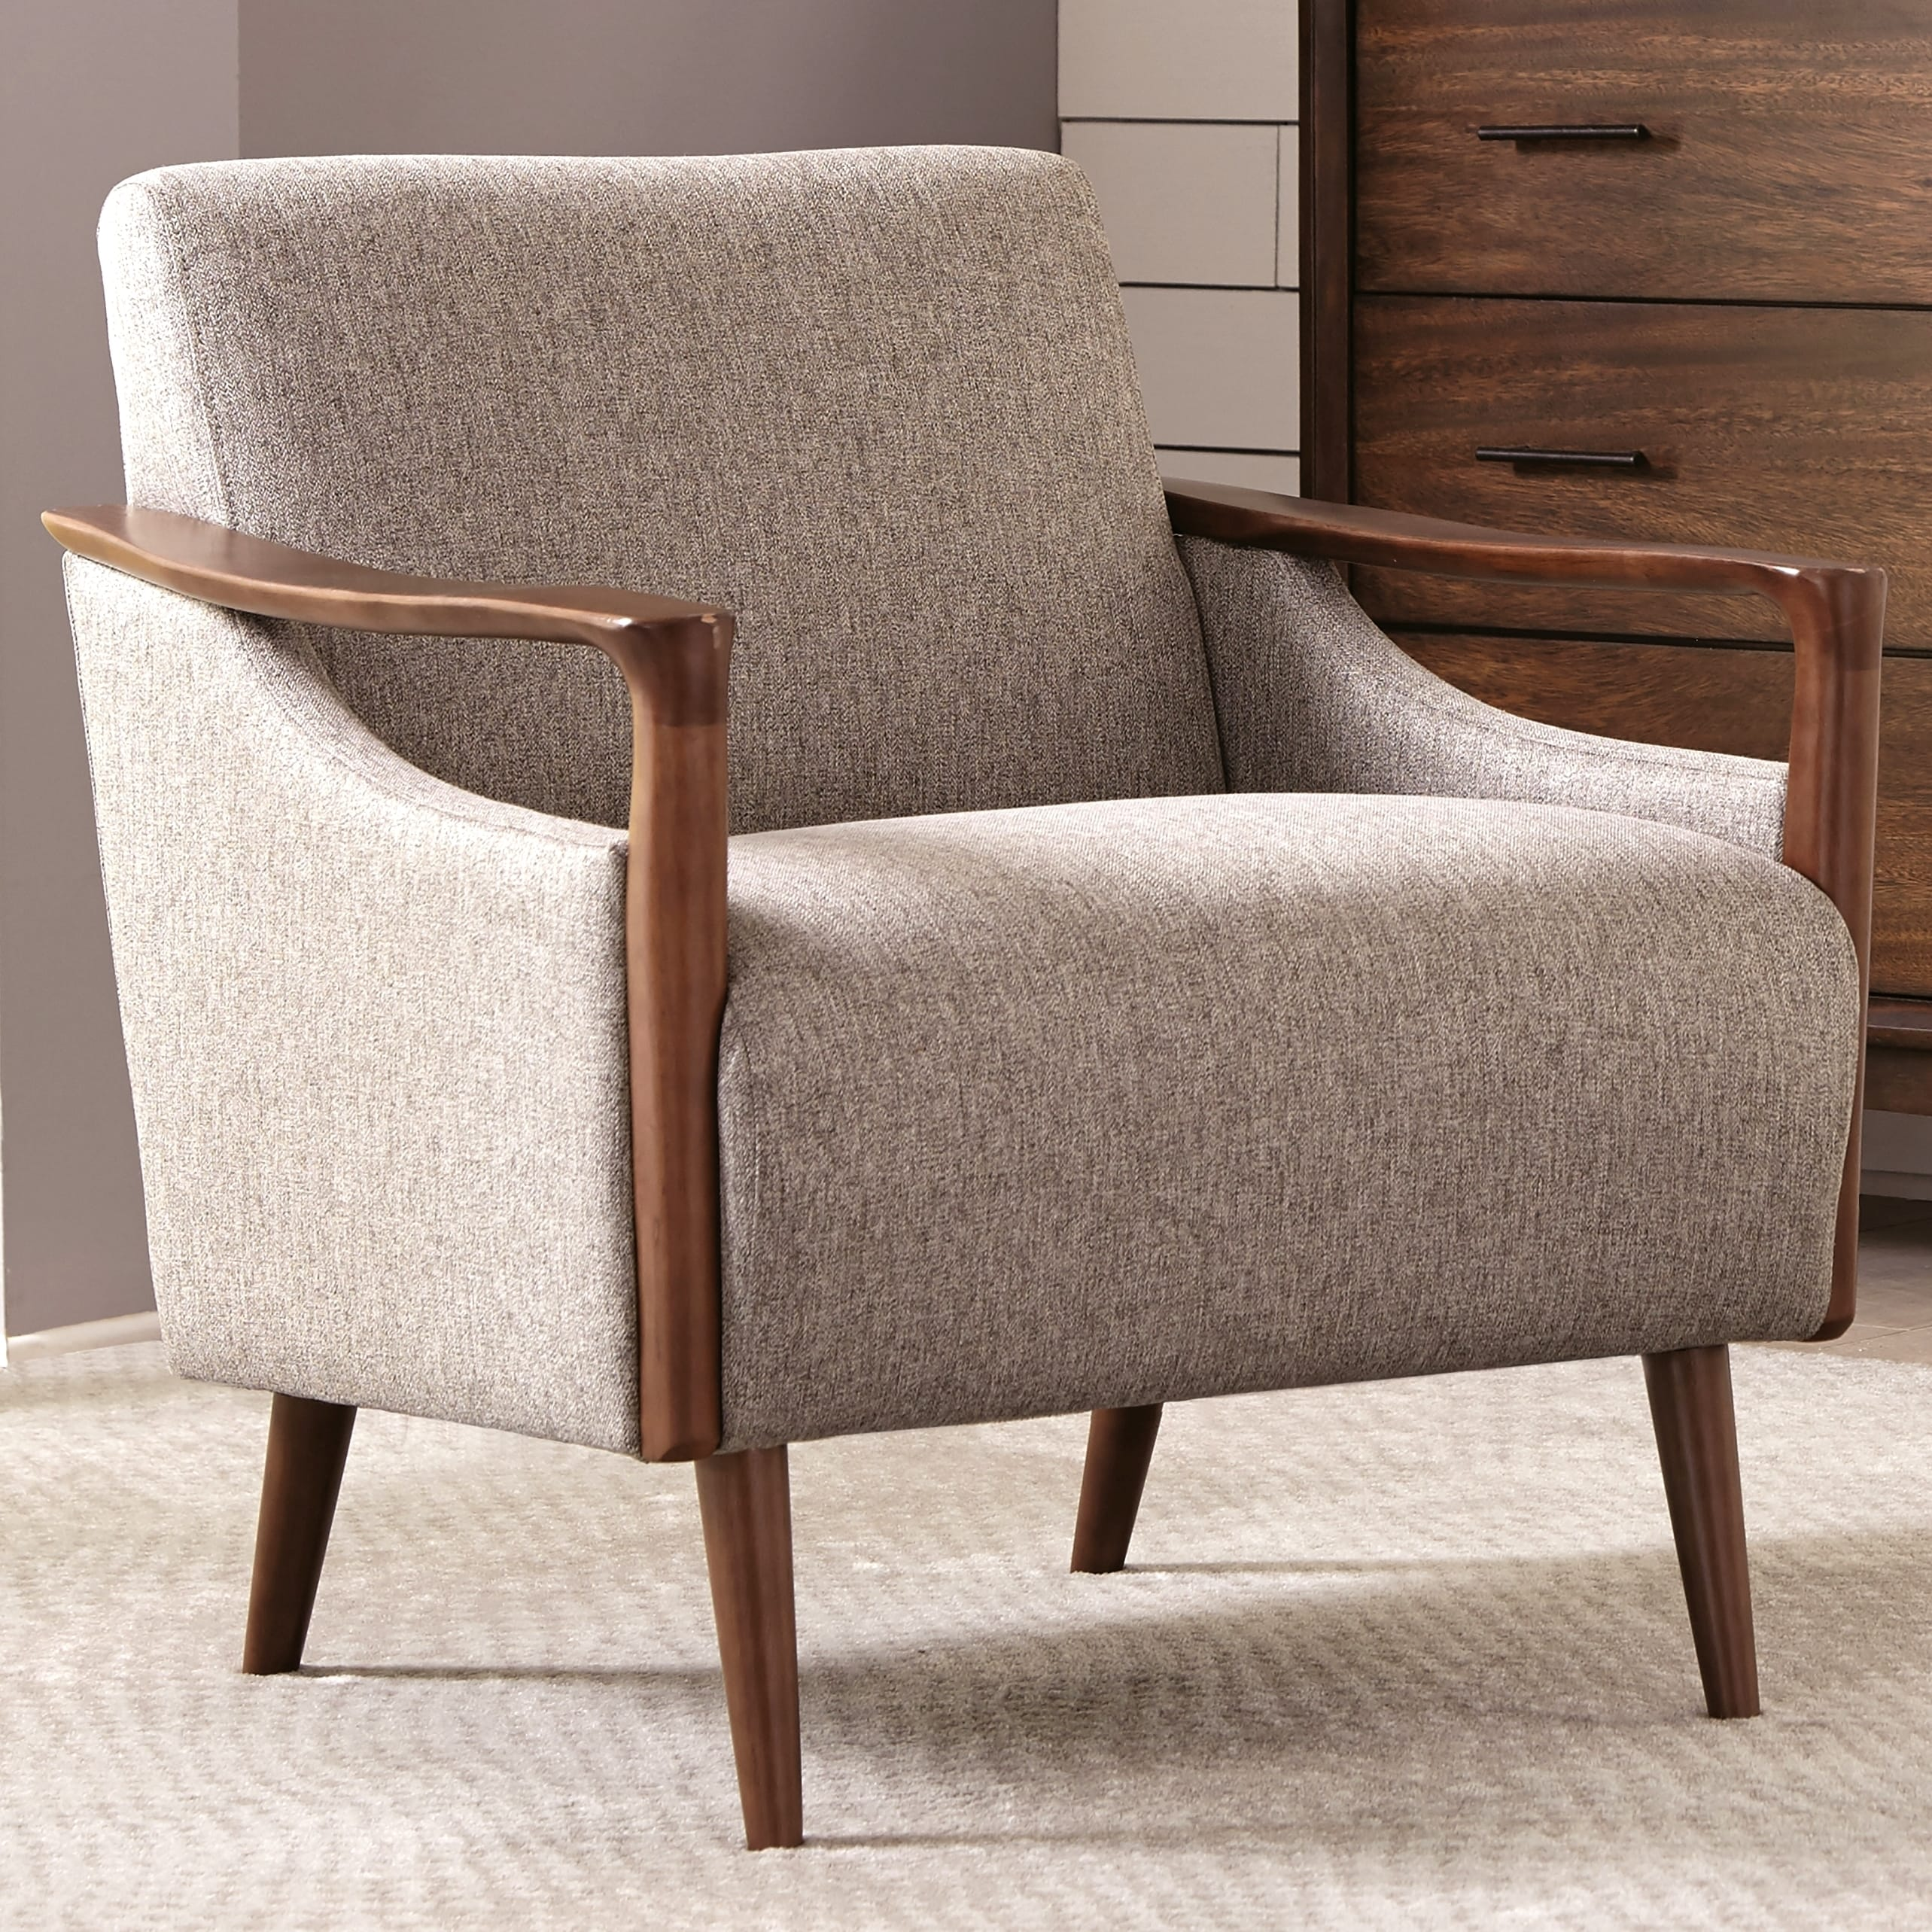 Shop Mid Century Modern Design Living Room Accent Chair Free